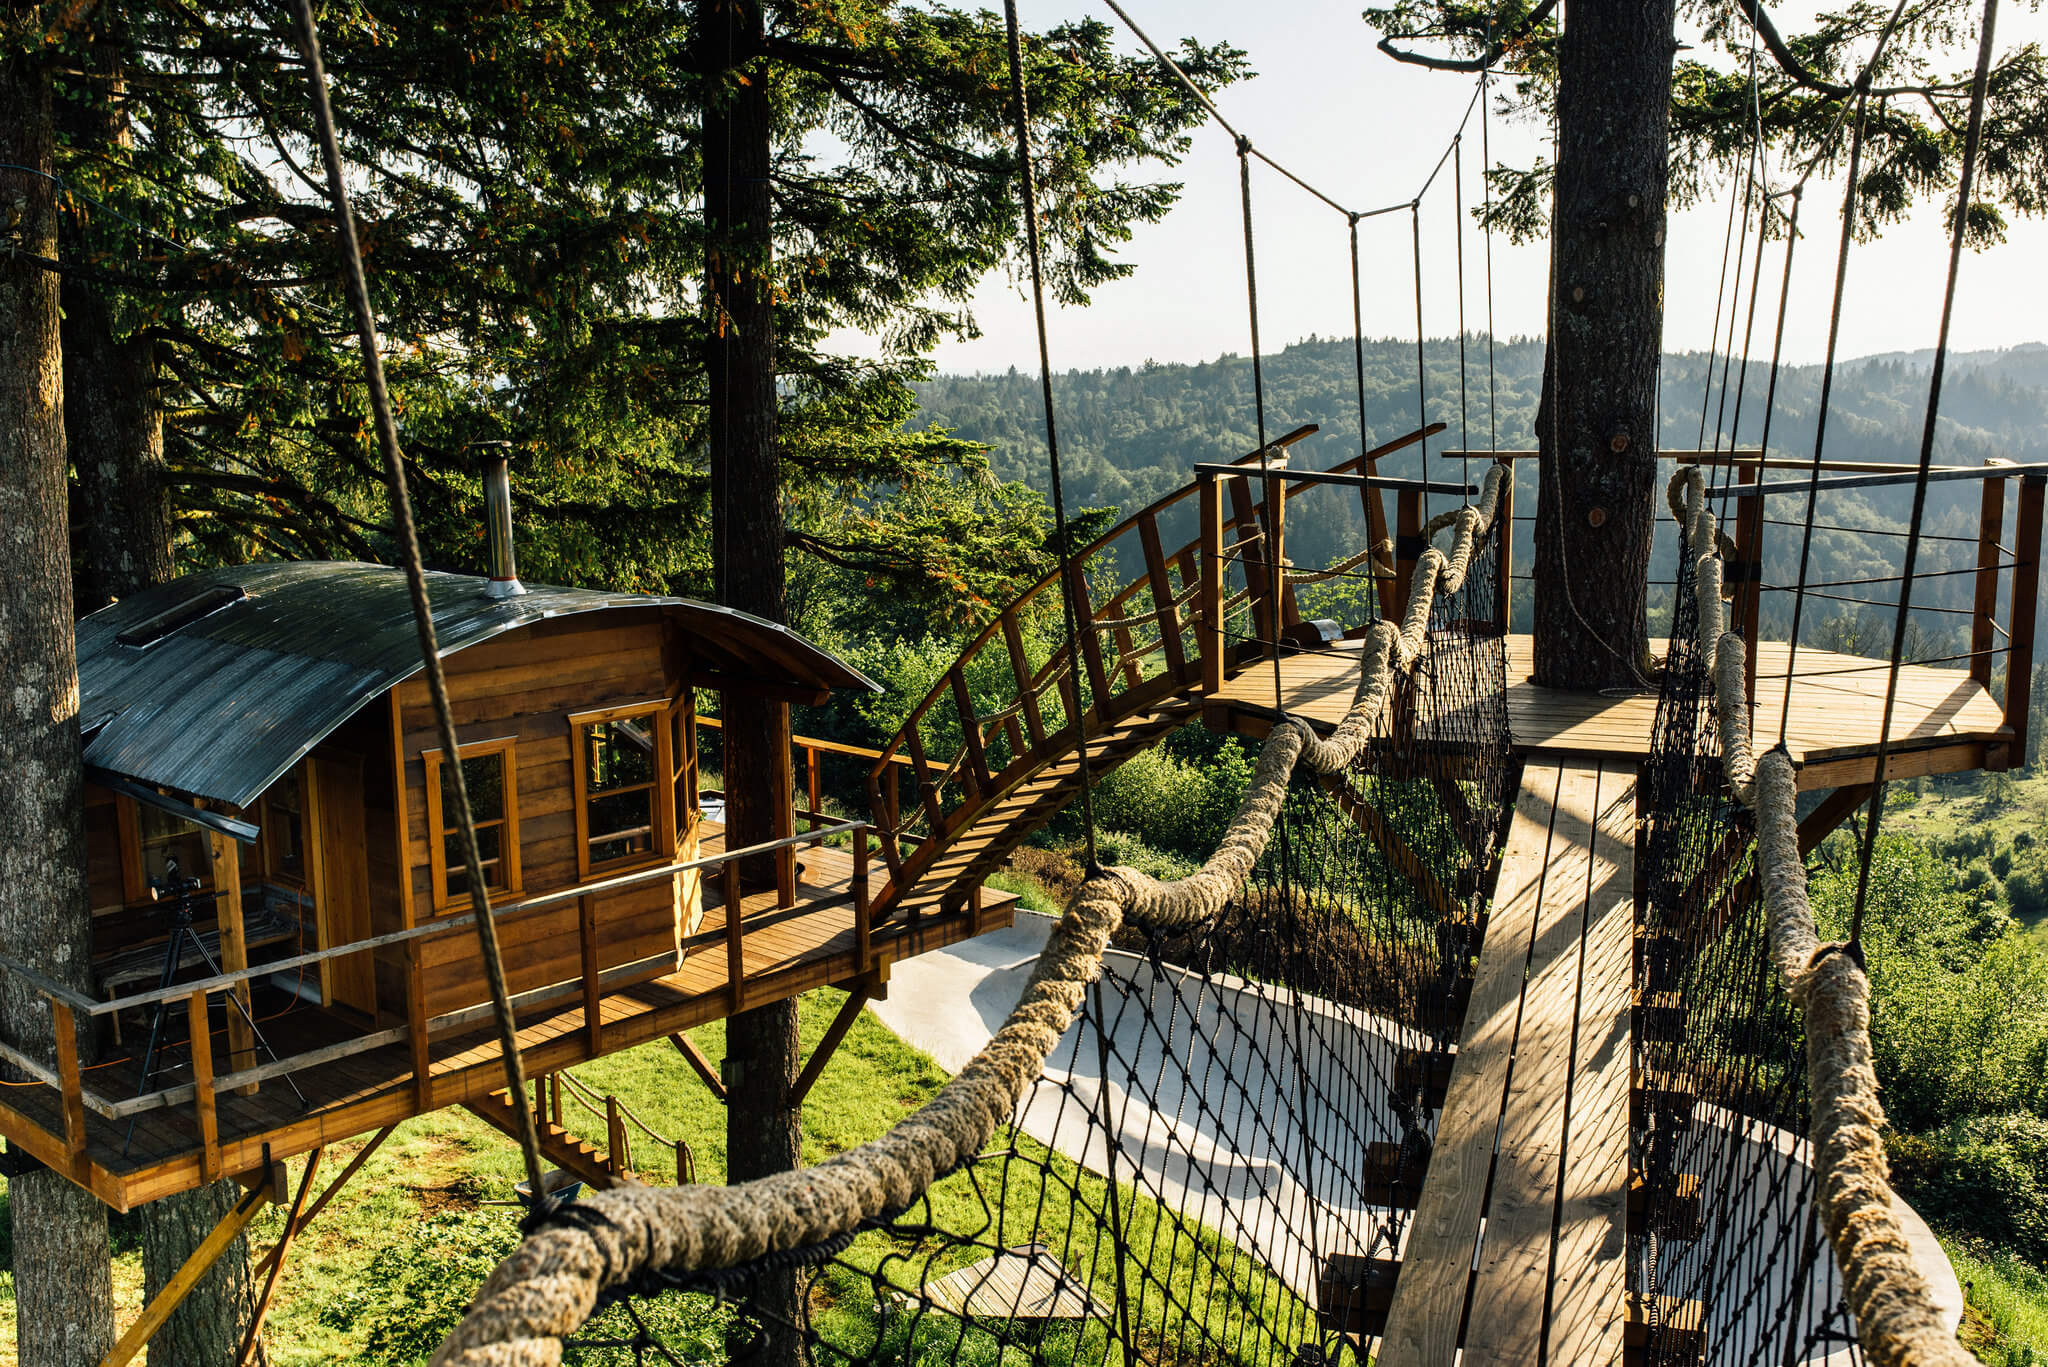 Guy Quits His Job To Build A Cool Tree House And Live Like